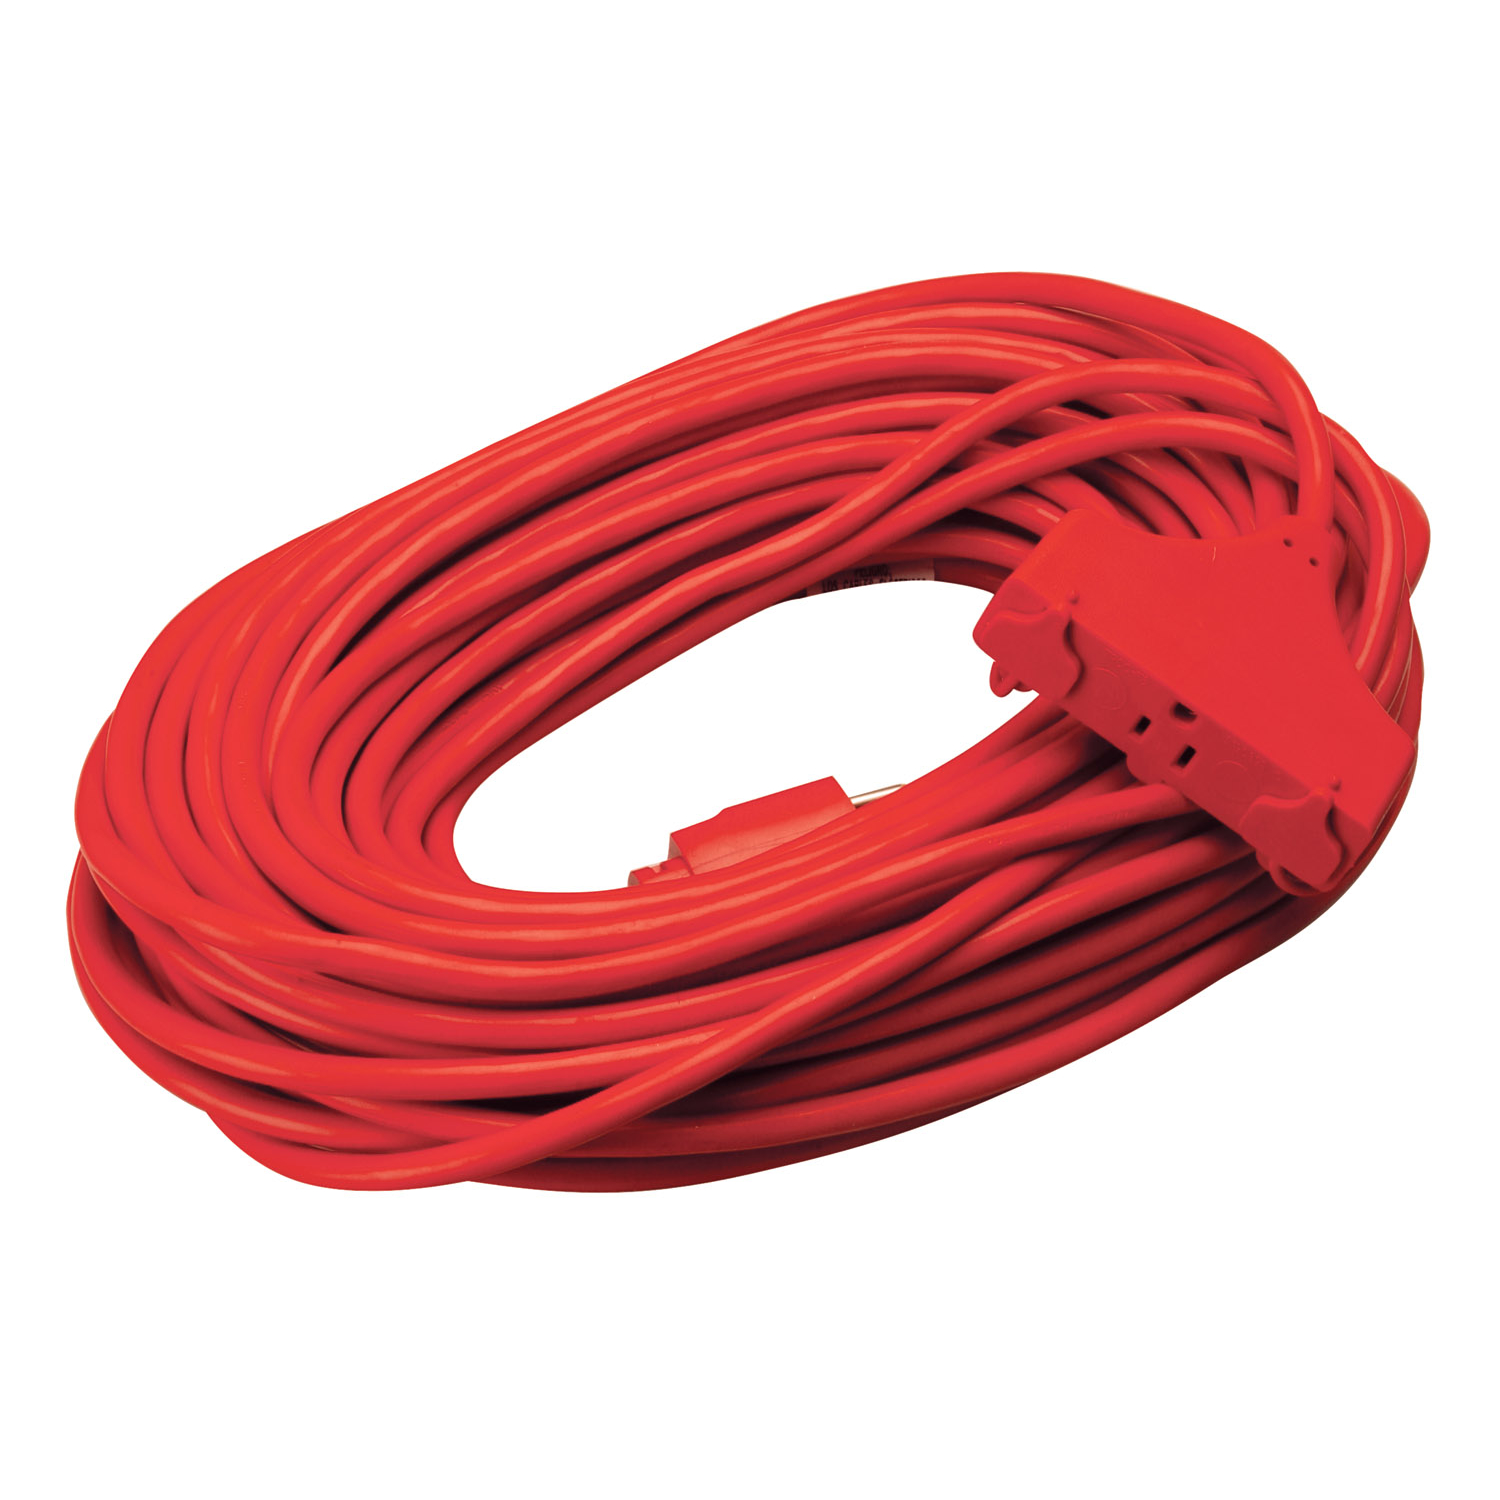 Coleman Cable 4219SW8804 100' 14/3 Red 3-Outlet Round Red Extension Cord